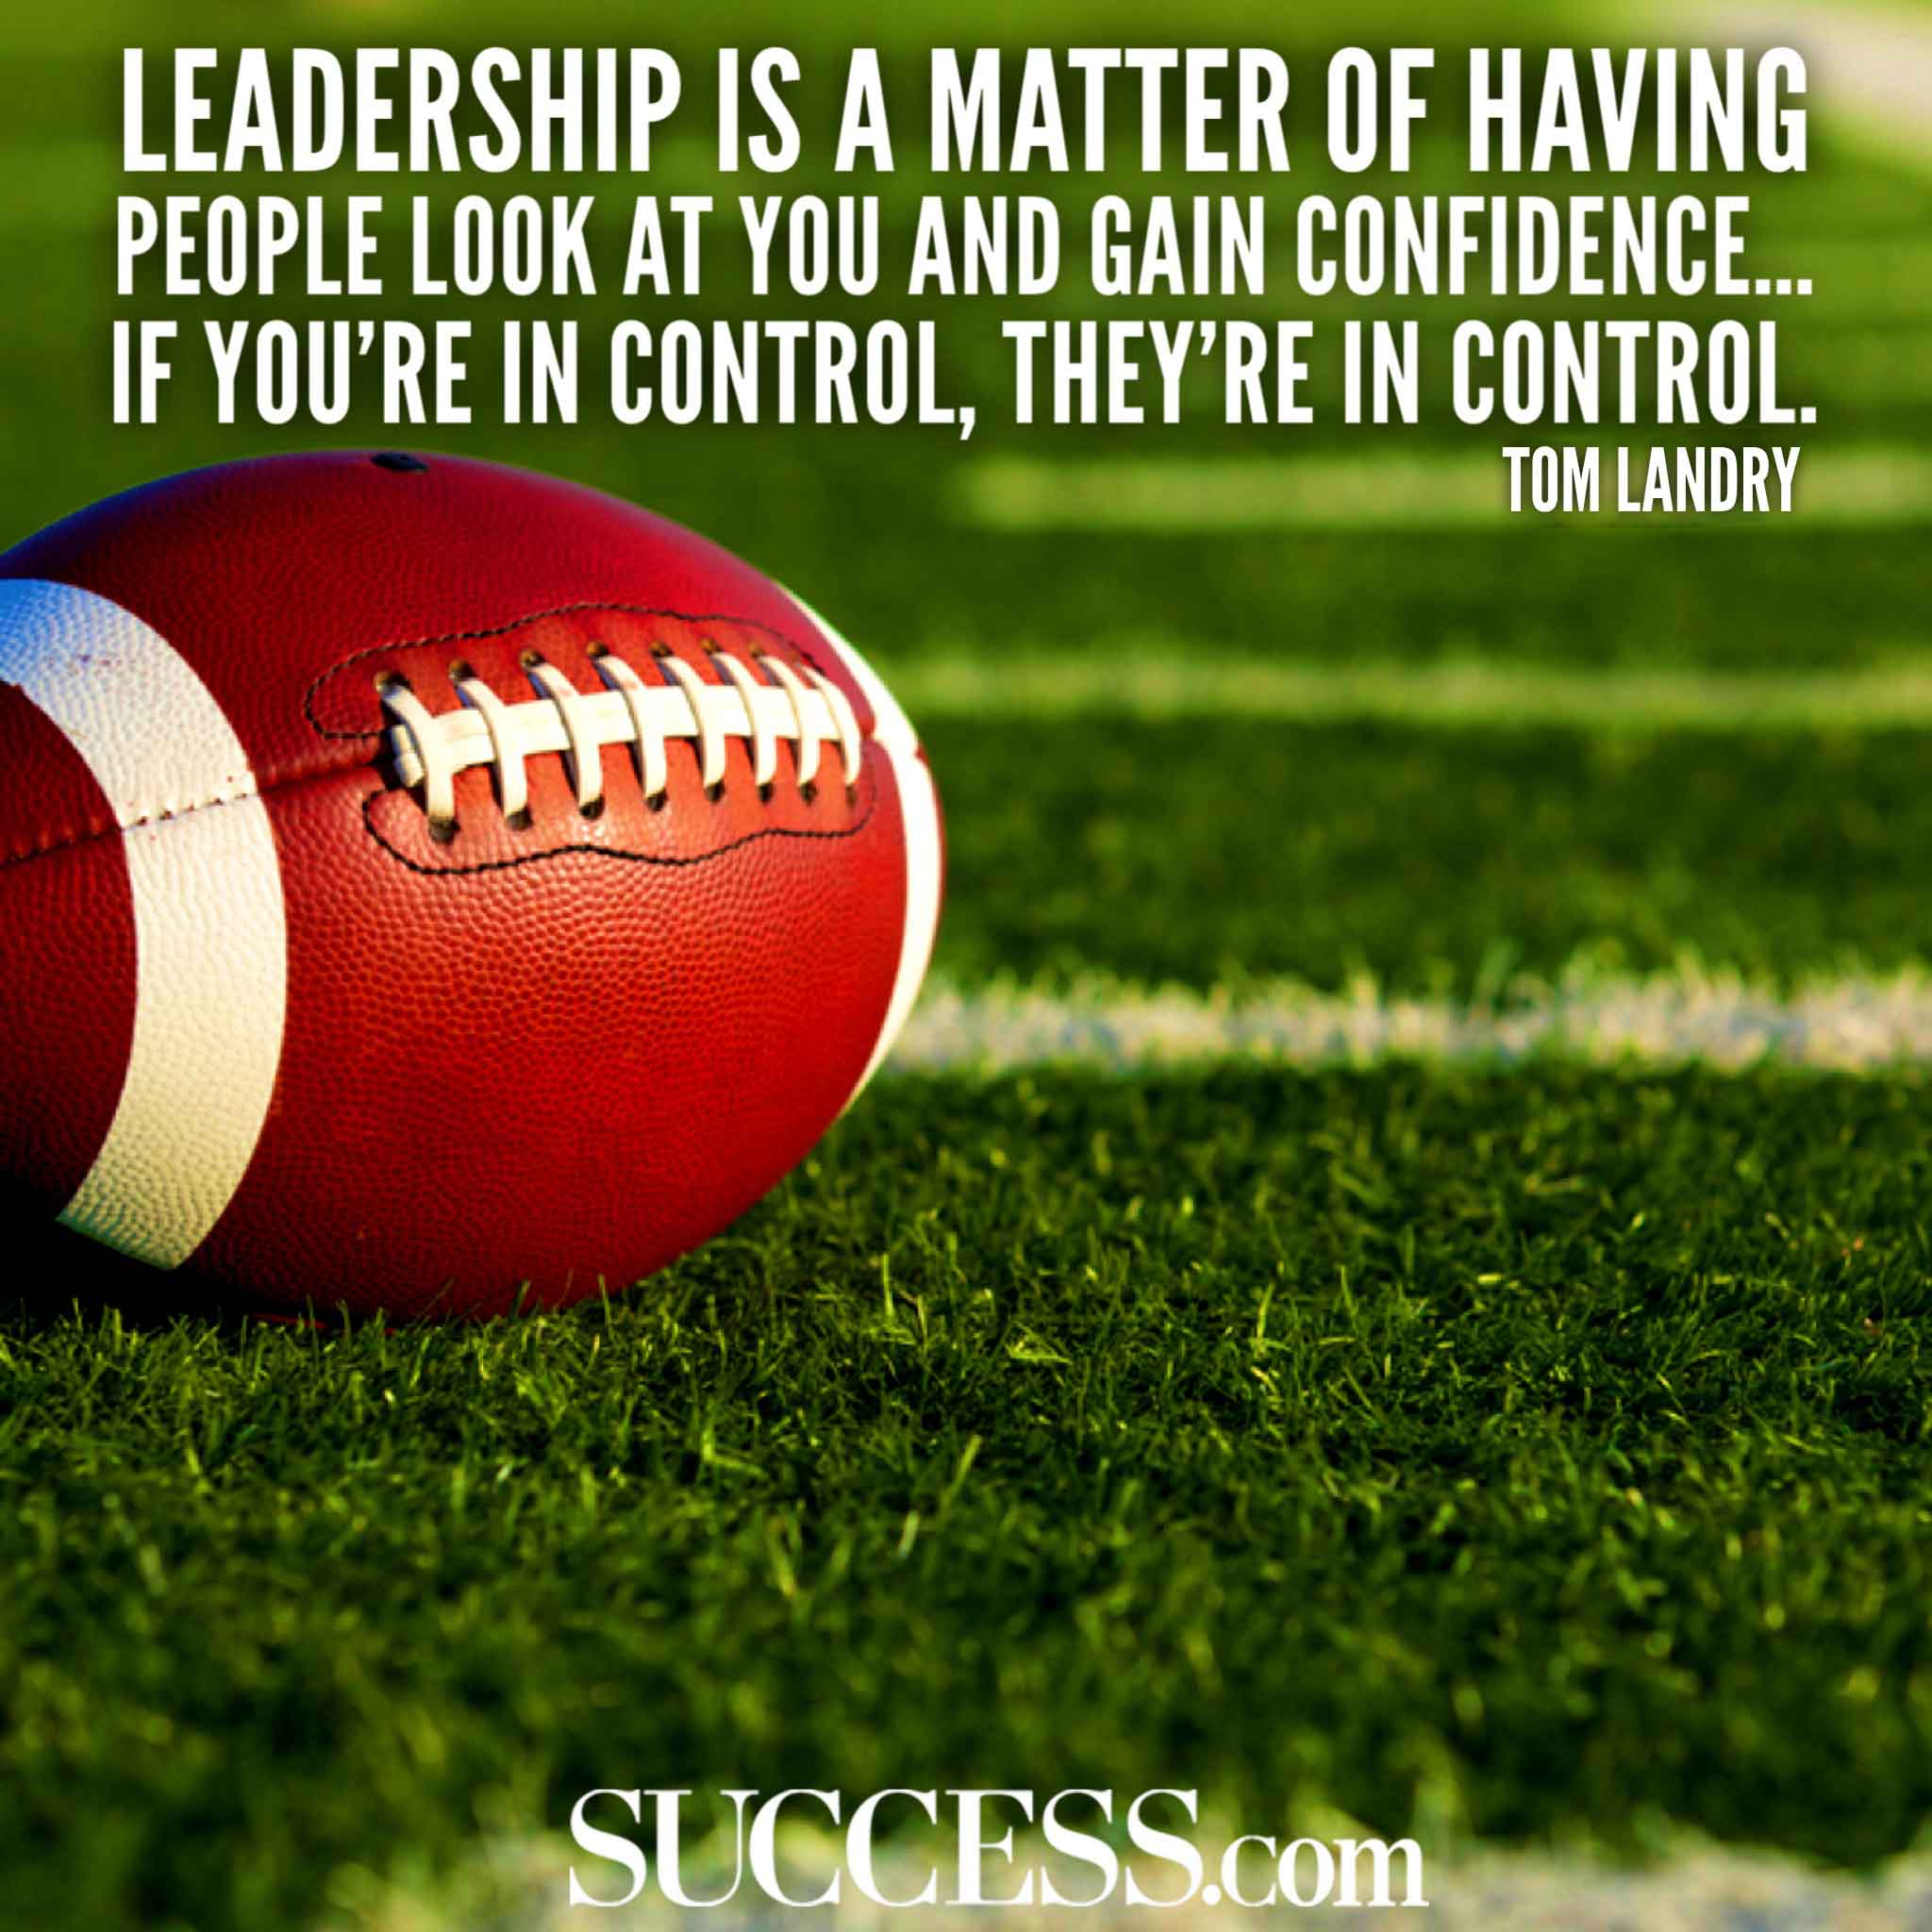 Success Success Magazine 20 Motivational Quotes By The Most Inspiring Nfl Coaches Of All Time